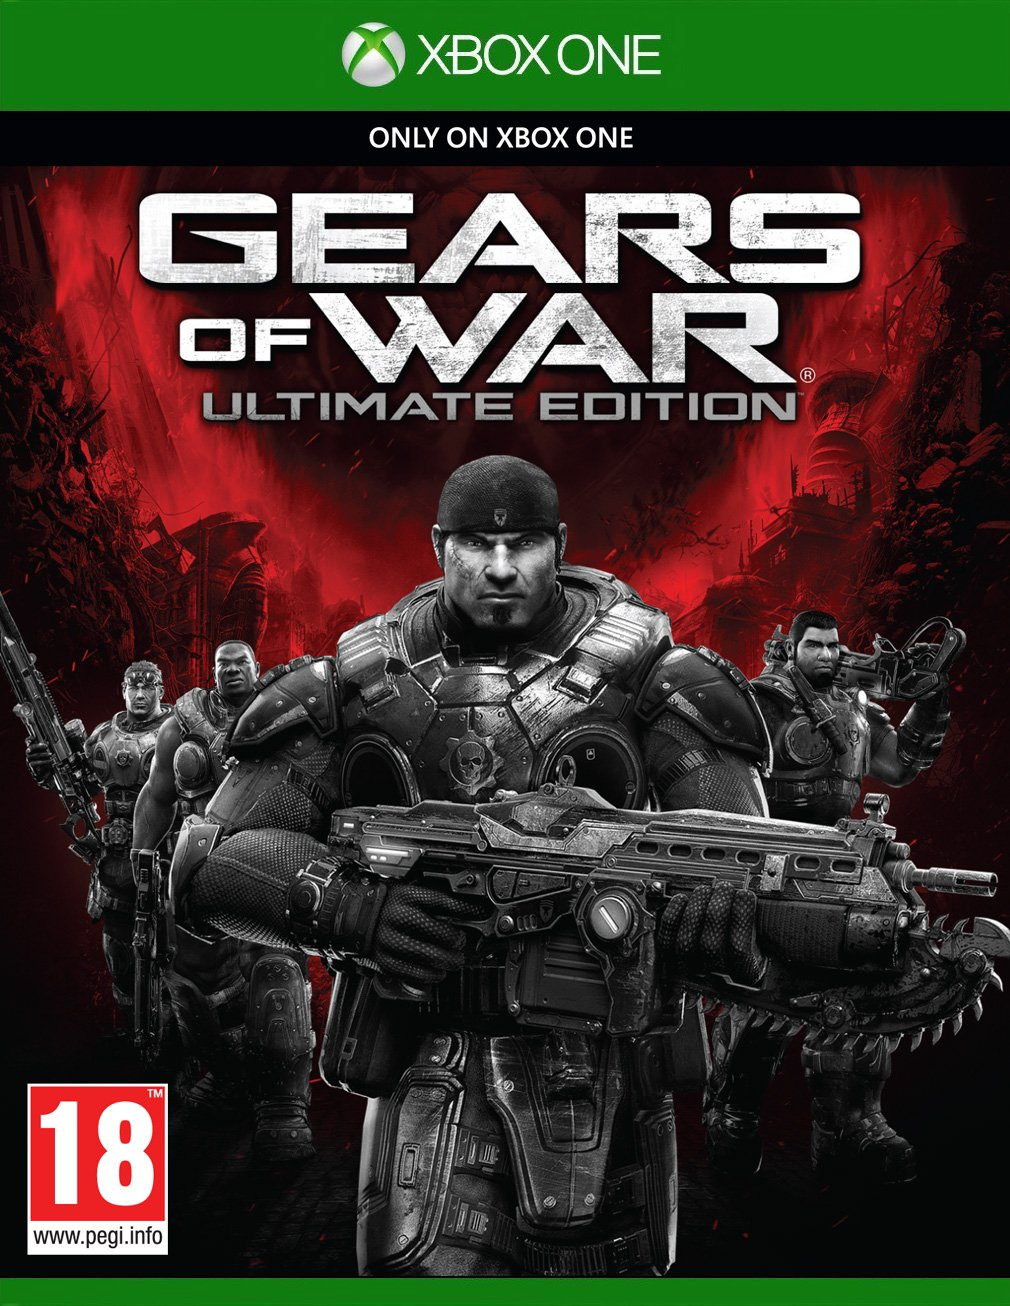 Gears of War: Ultimate Edition (Xbox One) product image